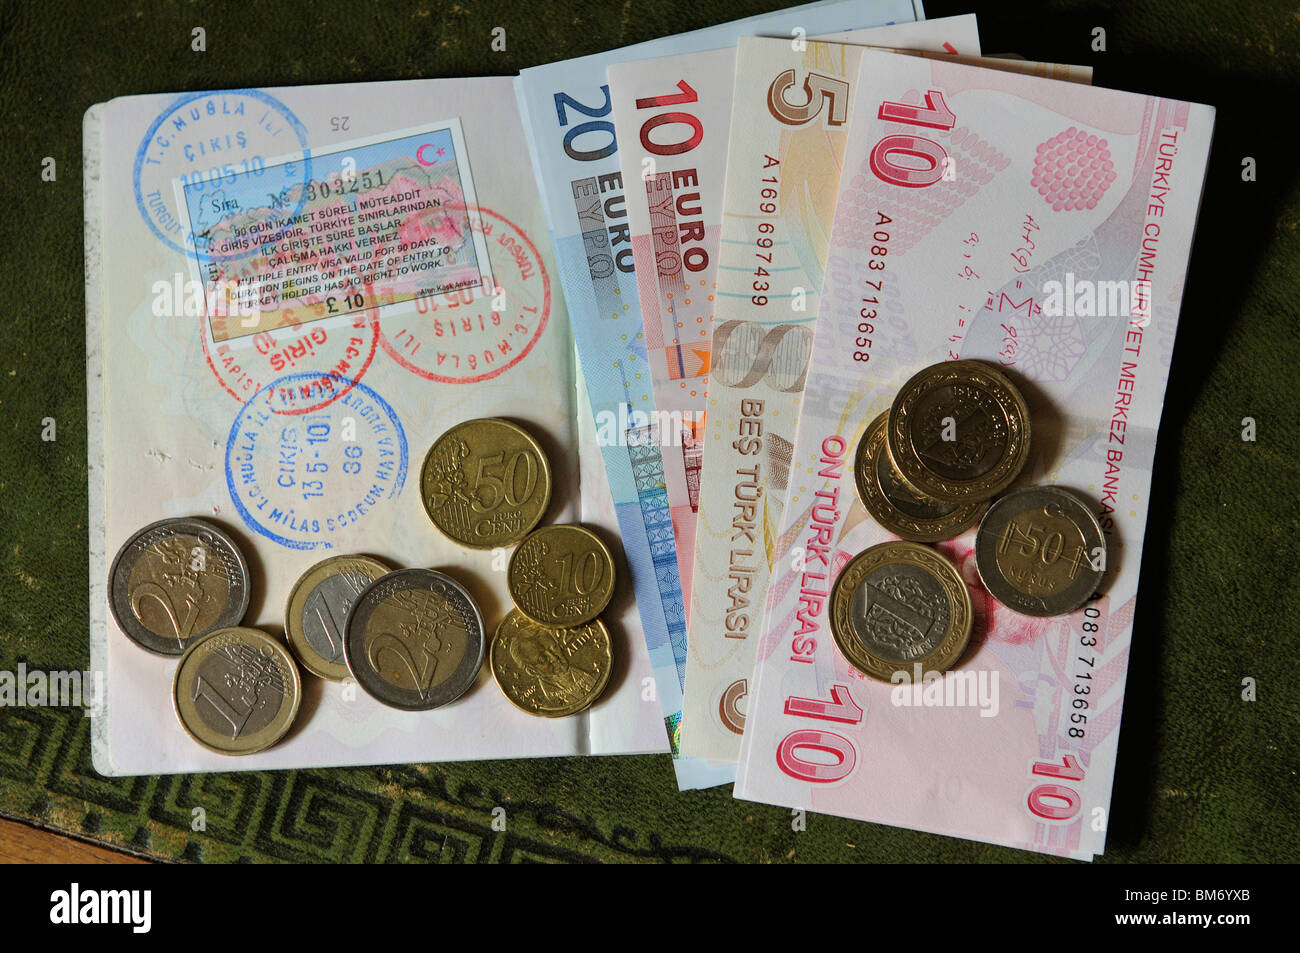 Turkish 90 day multiple entry visa in UK passport with entry and exit stamps and coins and Turkish Lire banknotes& - Stock Image